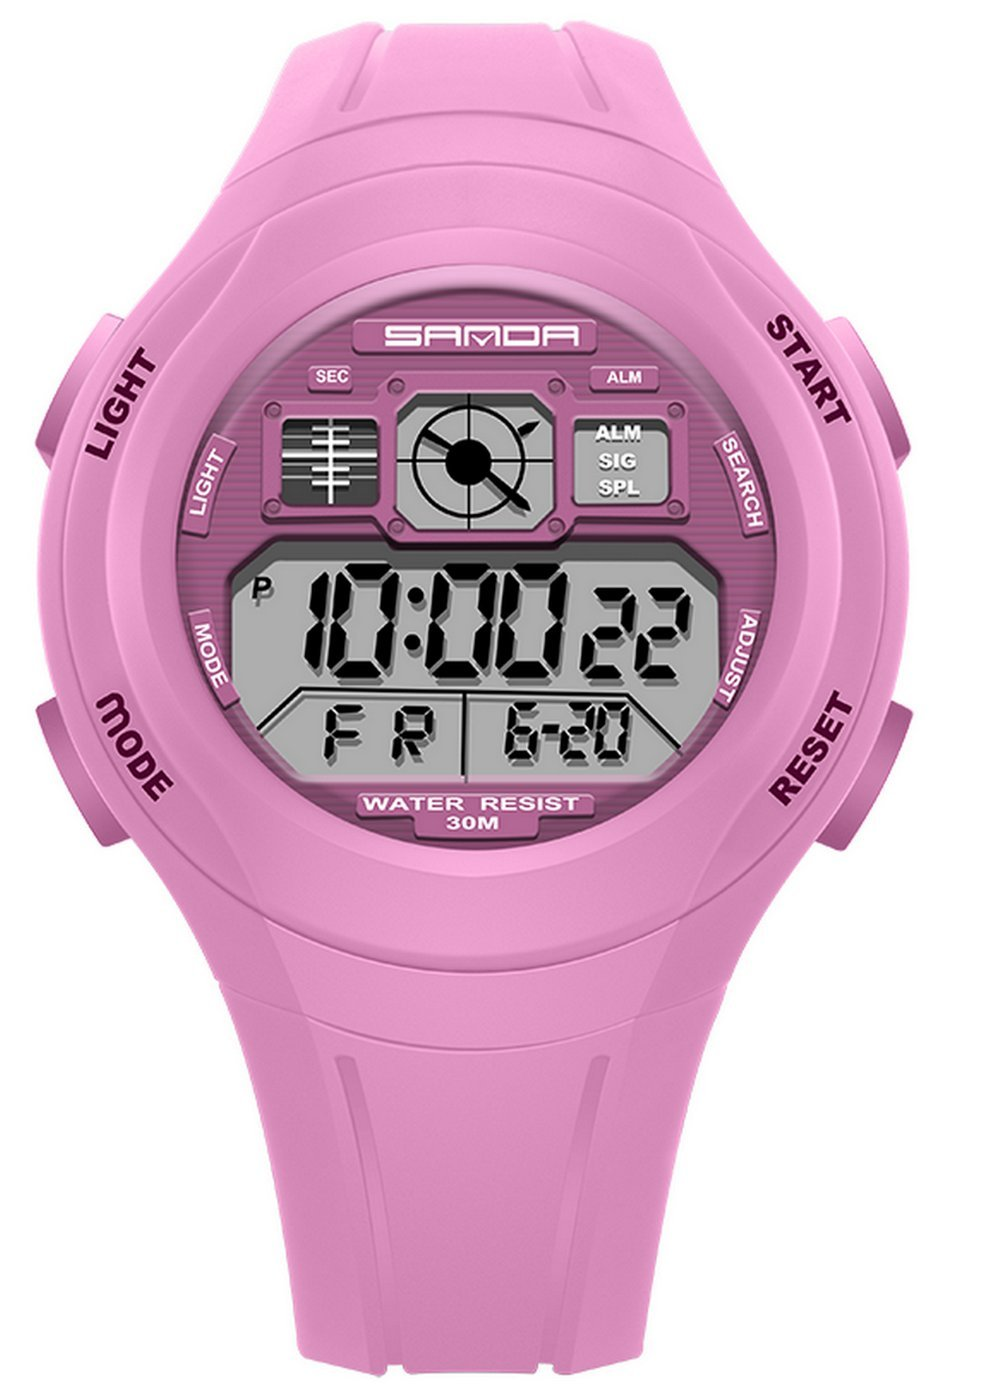 Water-proof Digital Outdoor LED Kids Sport Watches For Ages 7-10 Years Old Boys Girls